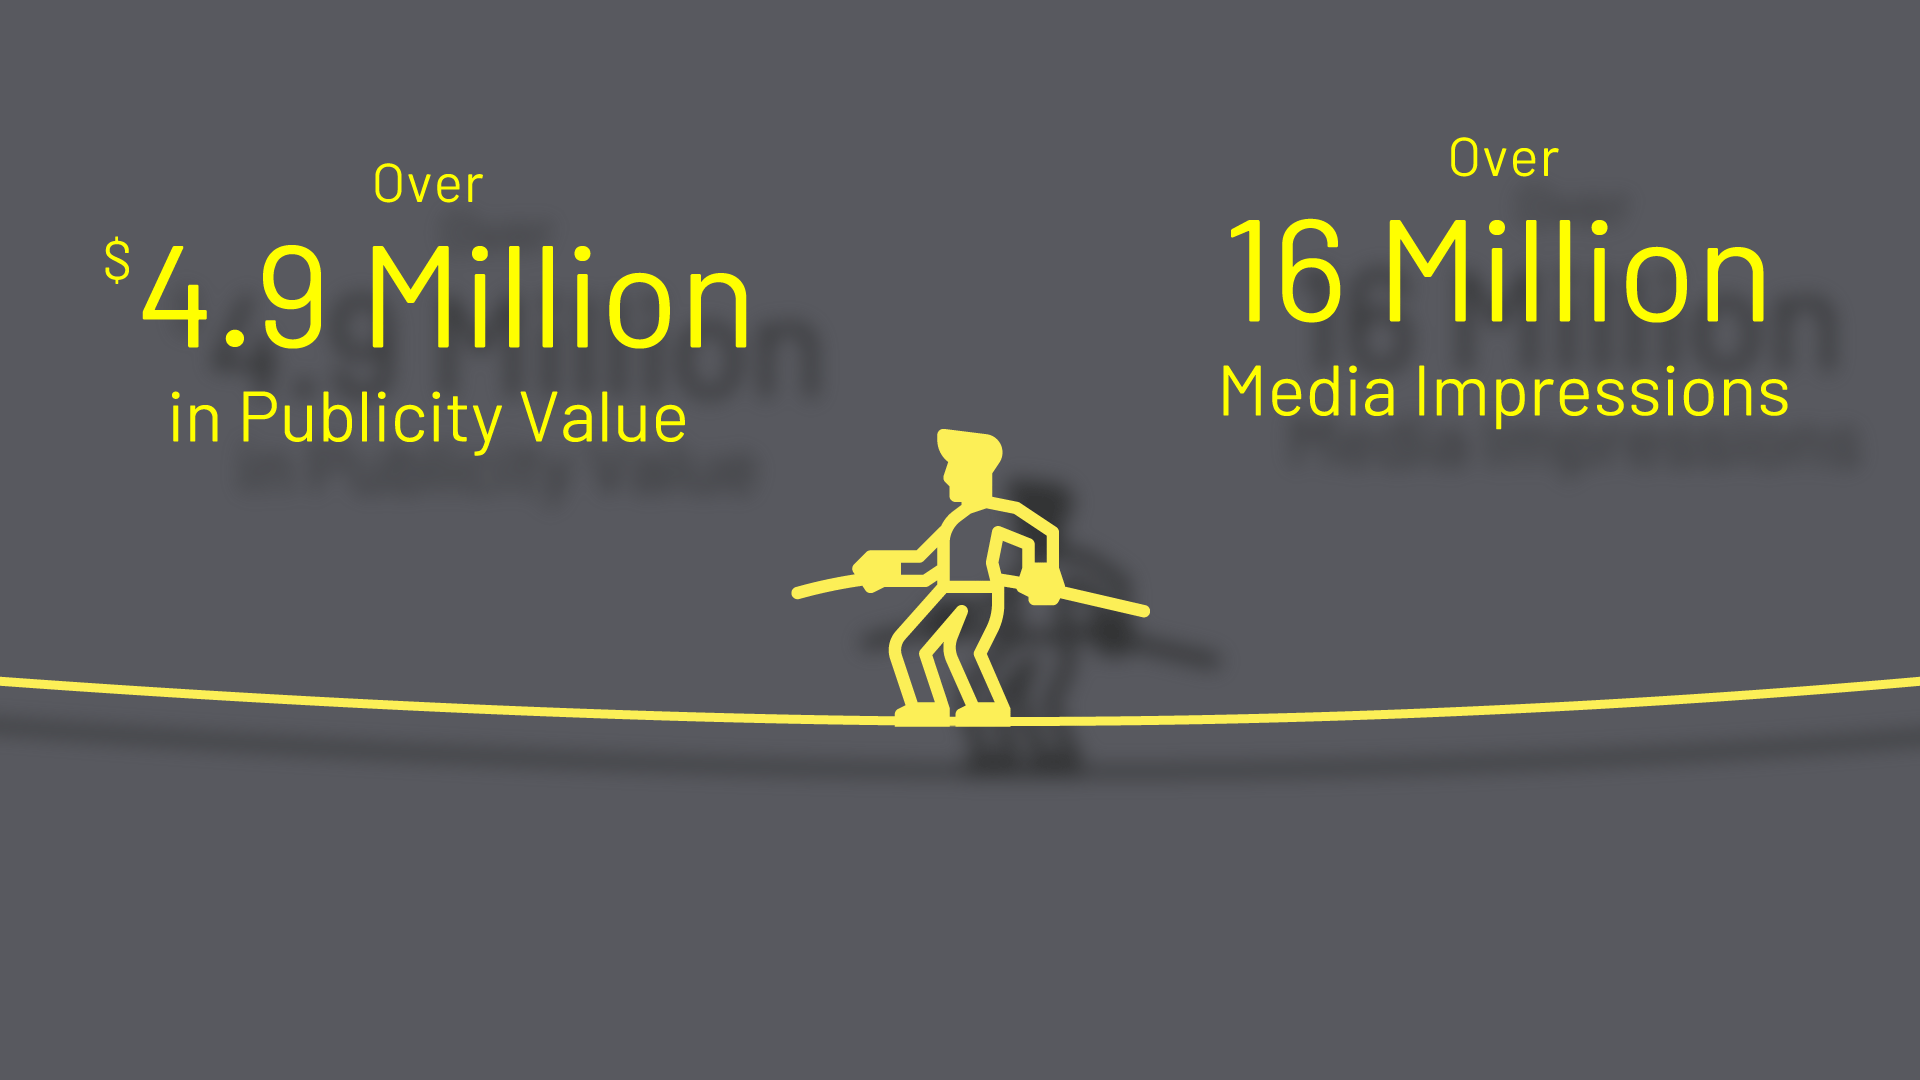 Earned more than 16M media impressions & Generated more than $4.9M in publicity value